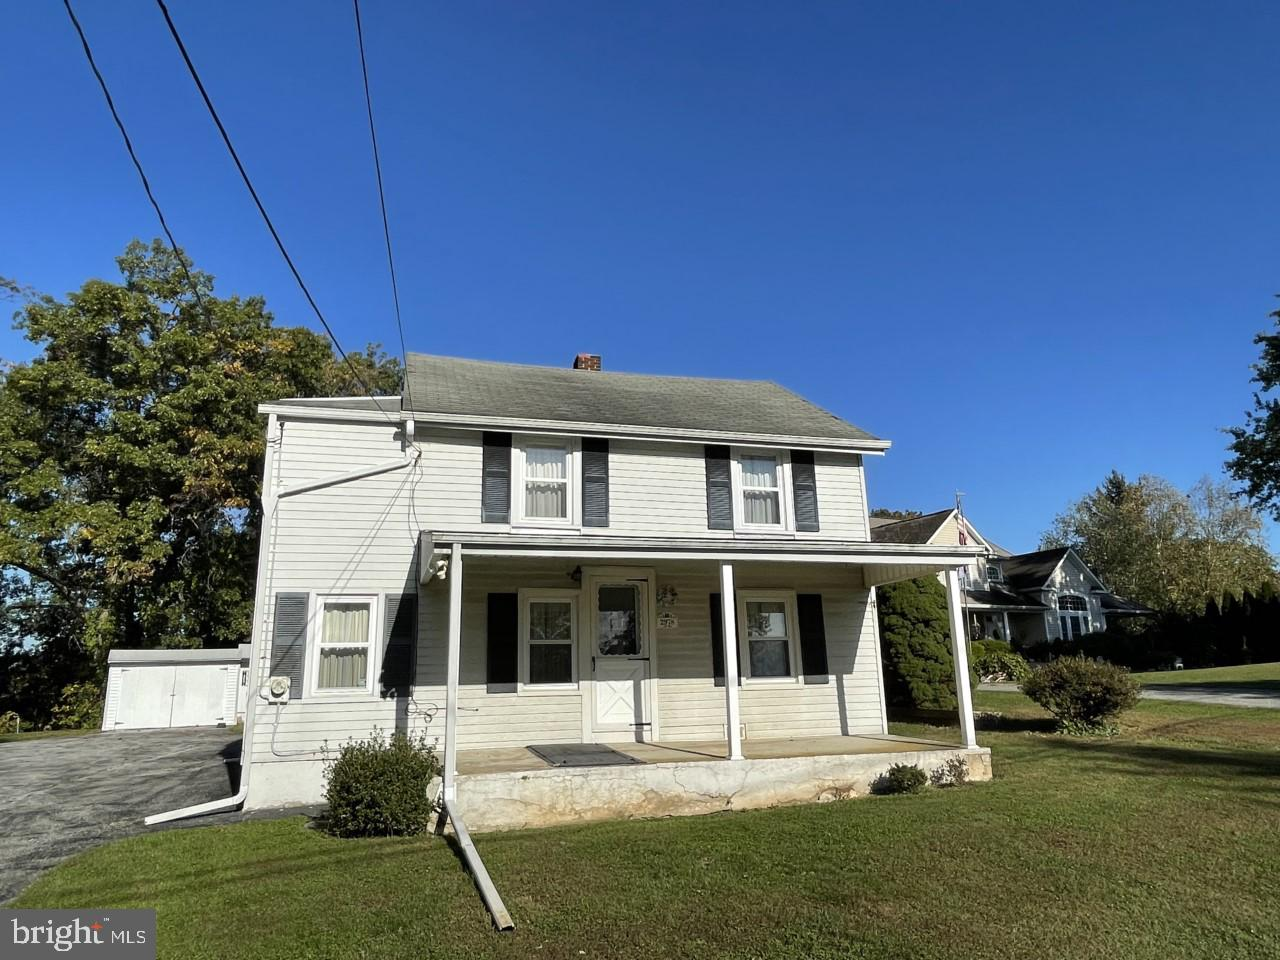 Attention 1st time home buyers or investors. Great price for a single family home. Everything in the